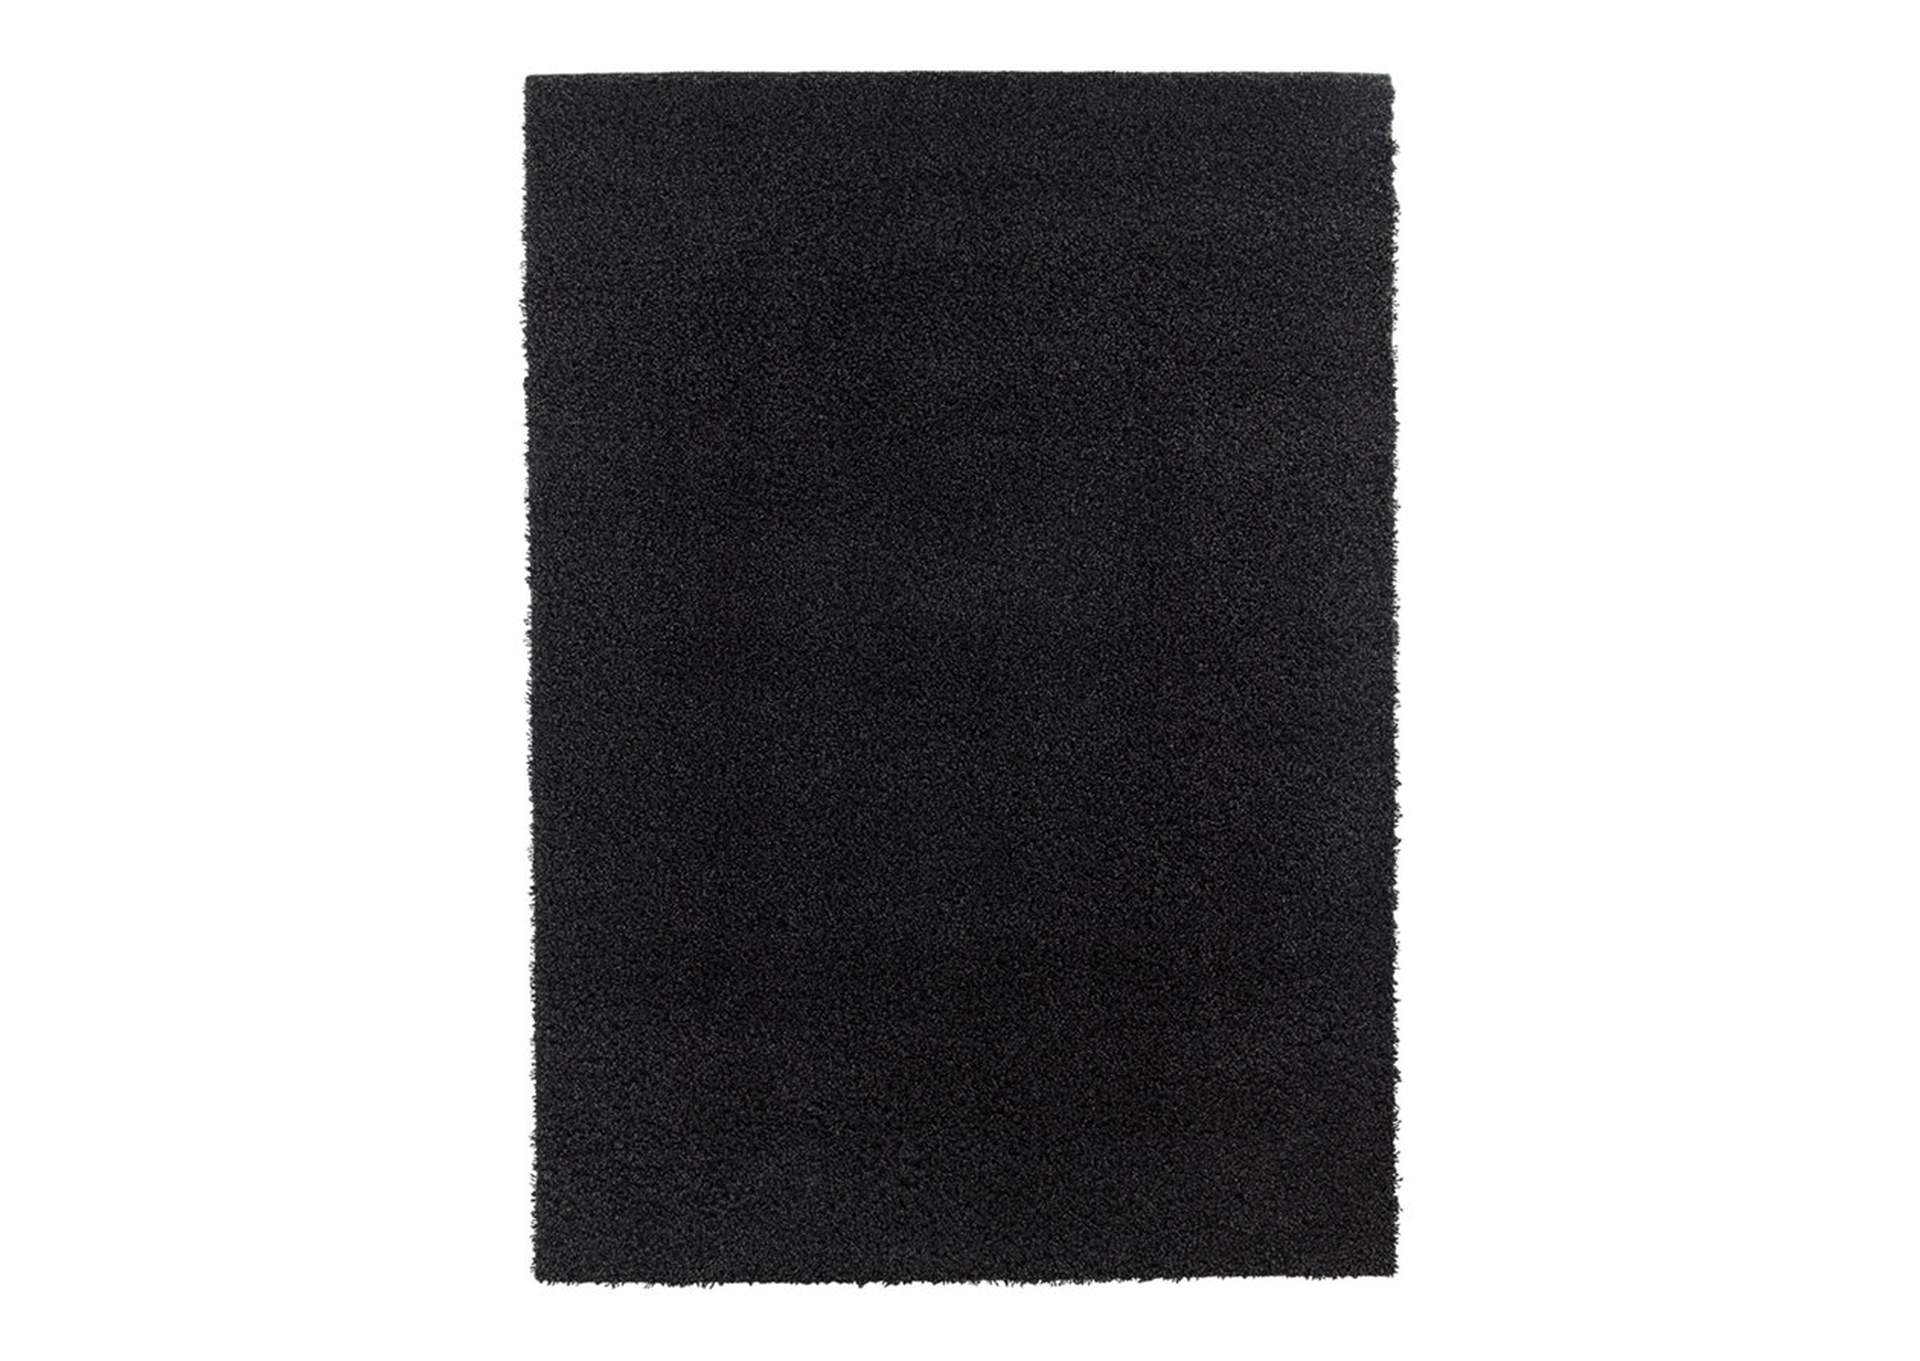 Caci Charcoal Medium Rug,Direct To Consumer Express